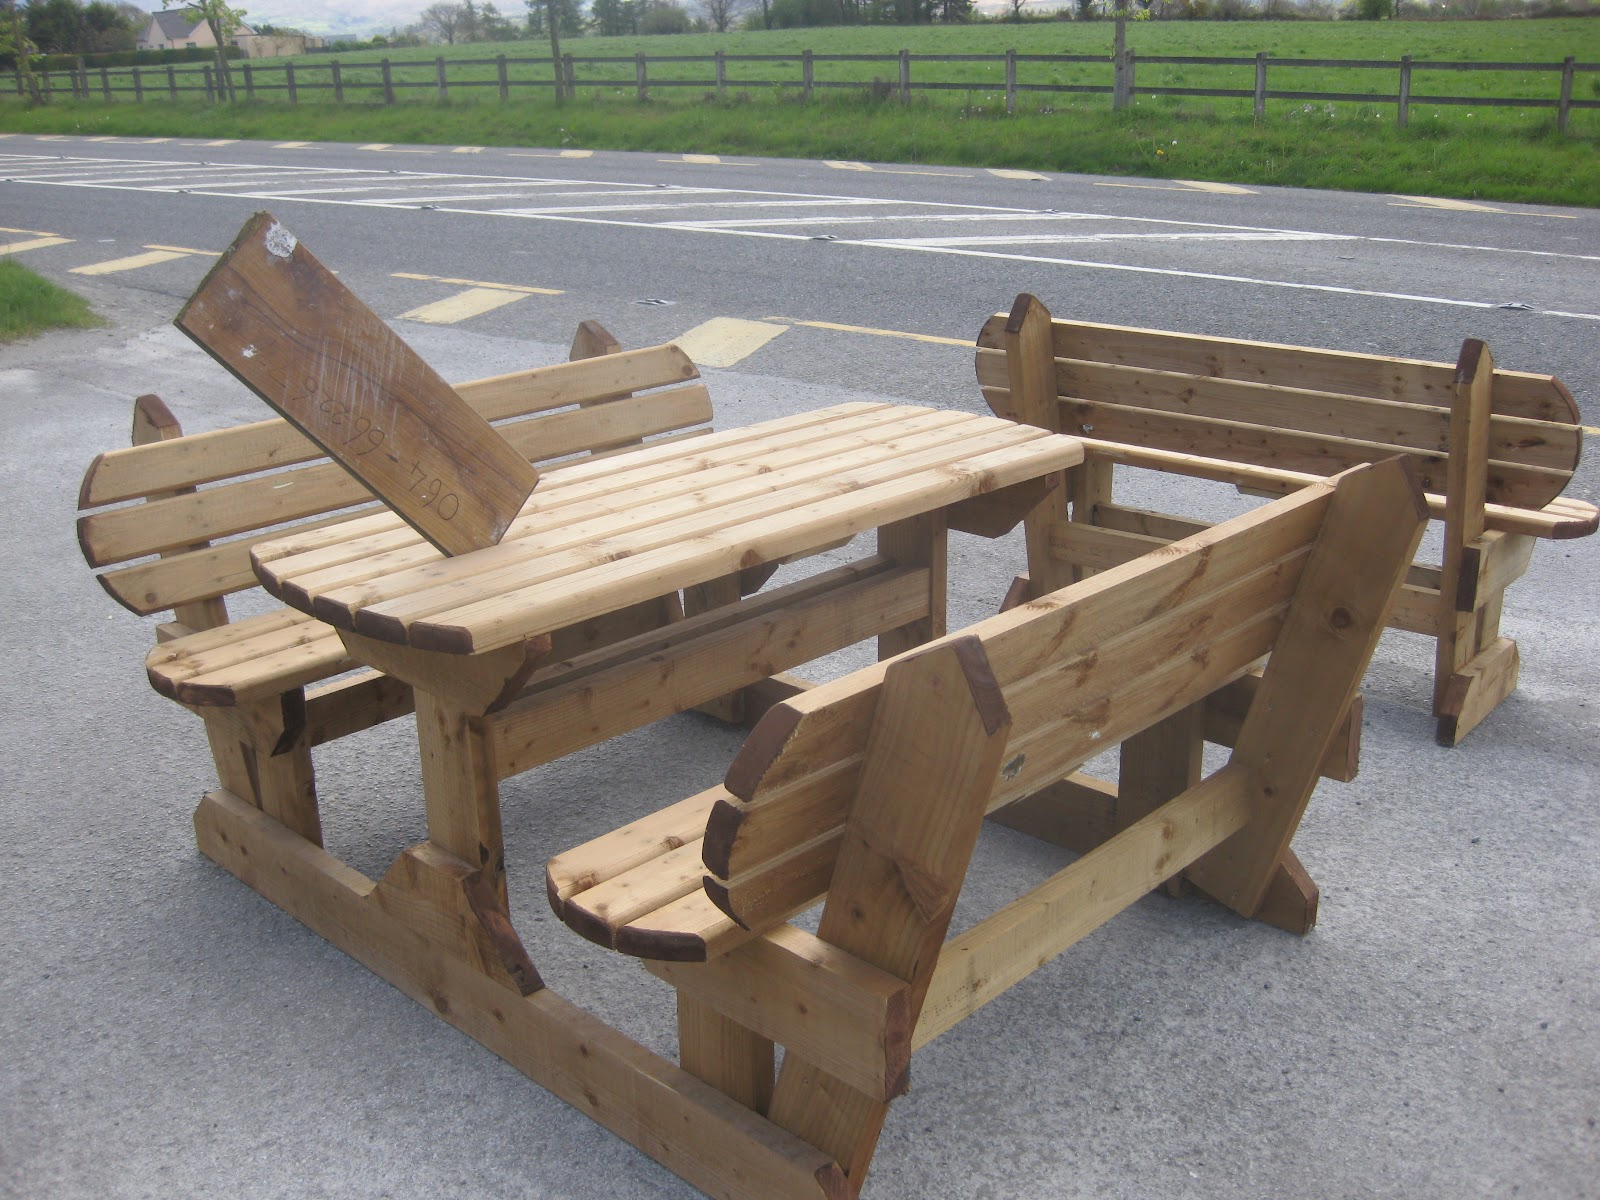 timber garden furniture for sale in killarney co kerry ireland - Garden Furniture Kerry